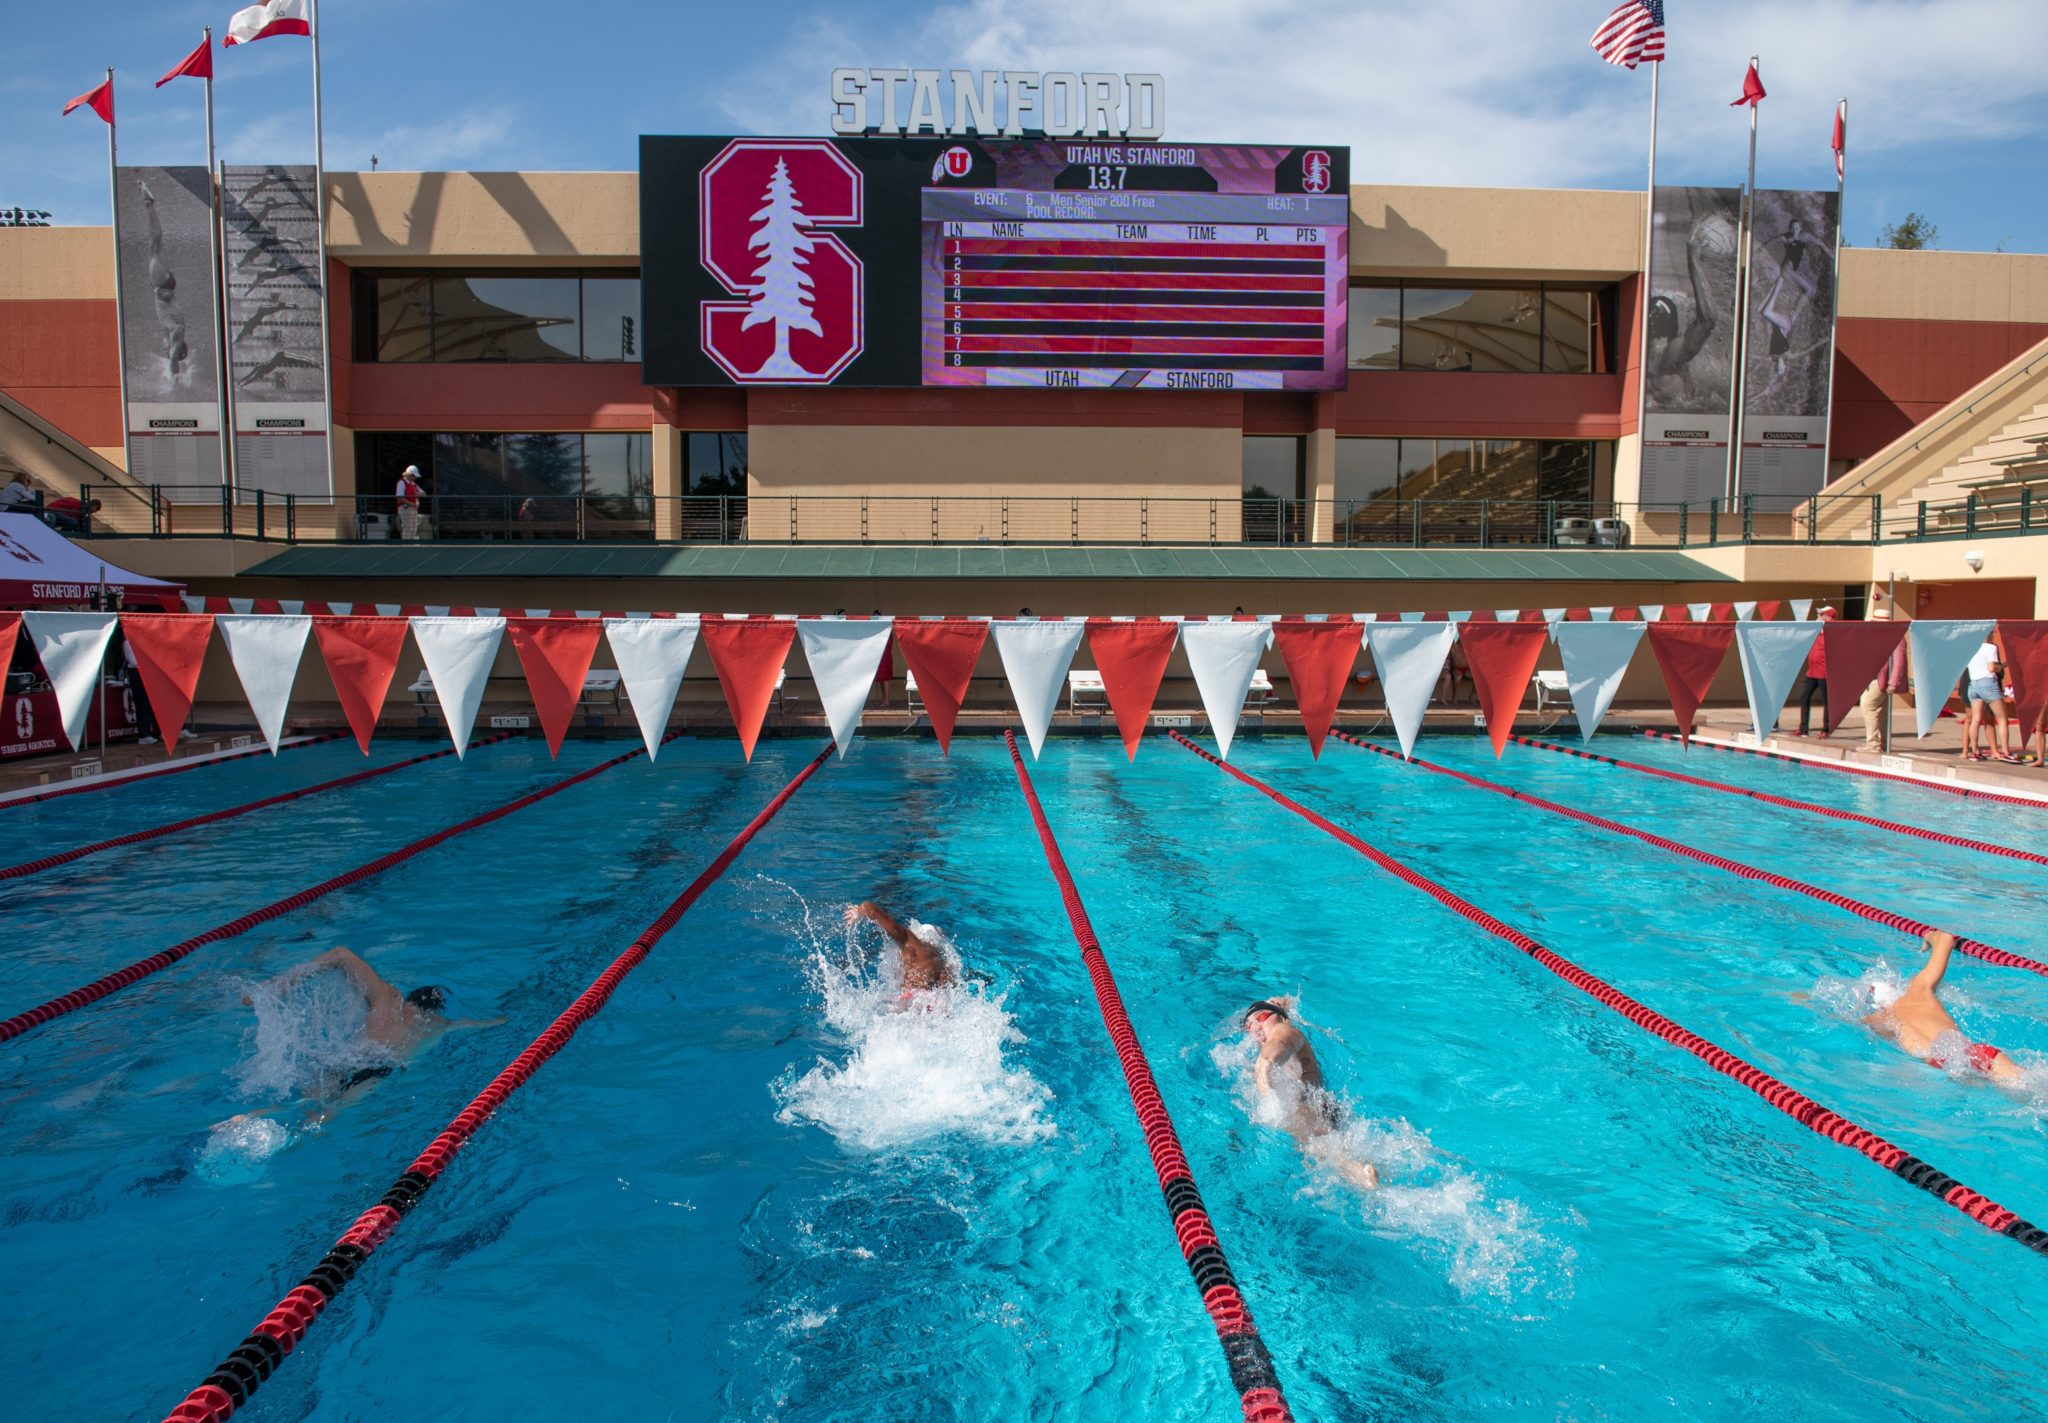 Stanford's Avery Aquatic Center Unveils Huge New Scoreboard